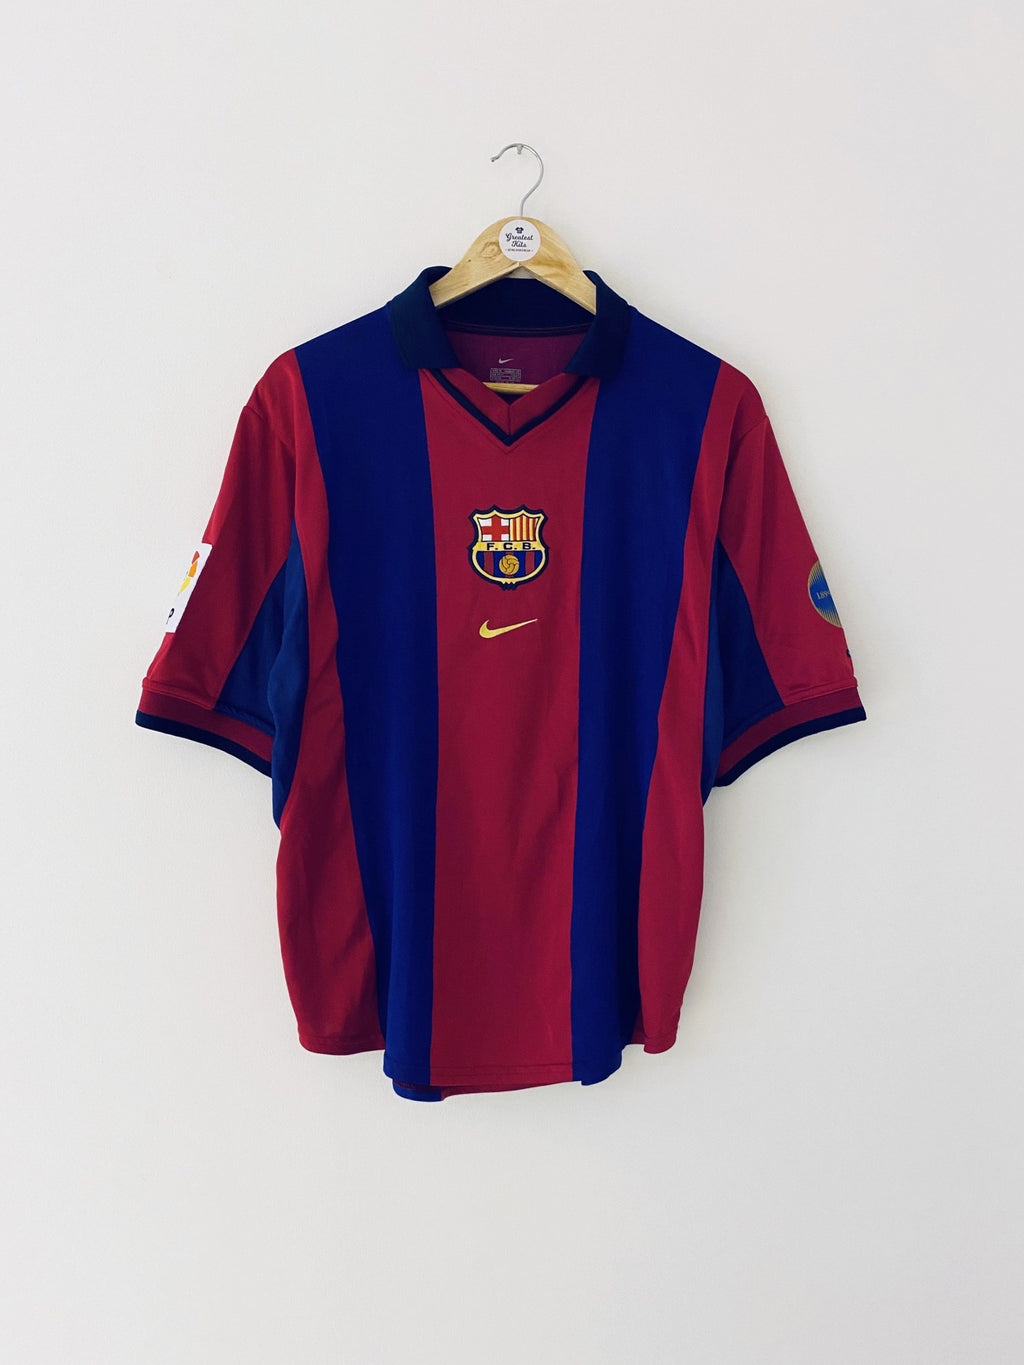 2000/01 Barcelona Home Centenary Shirt (M) 9.5/10